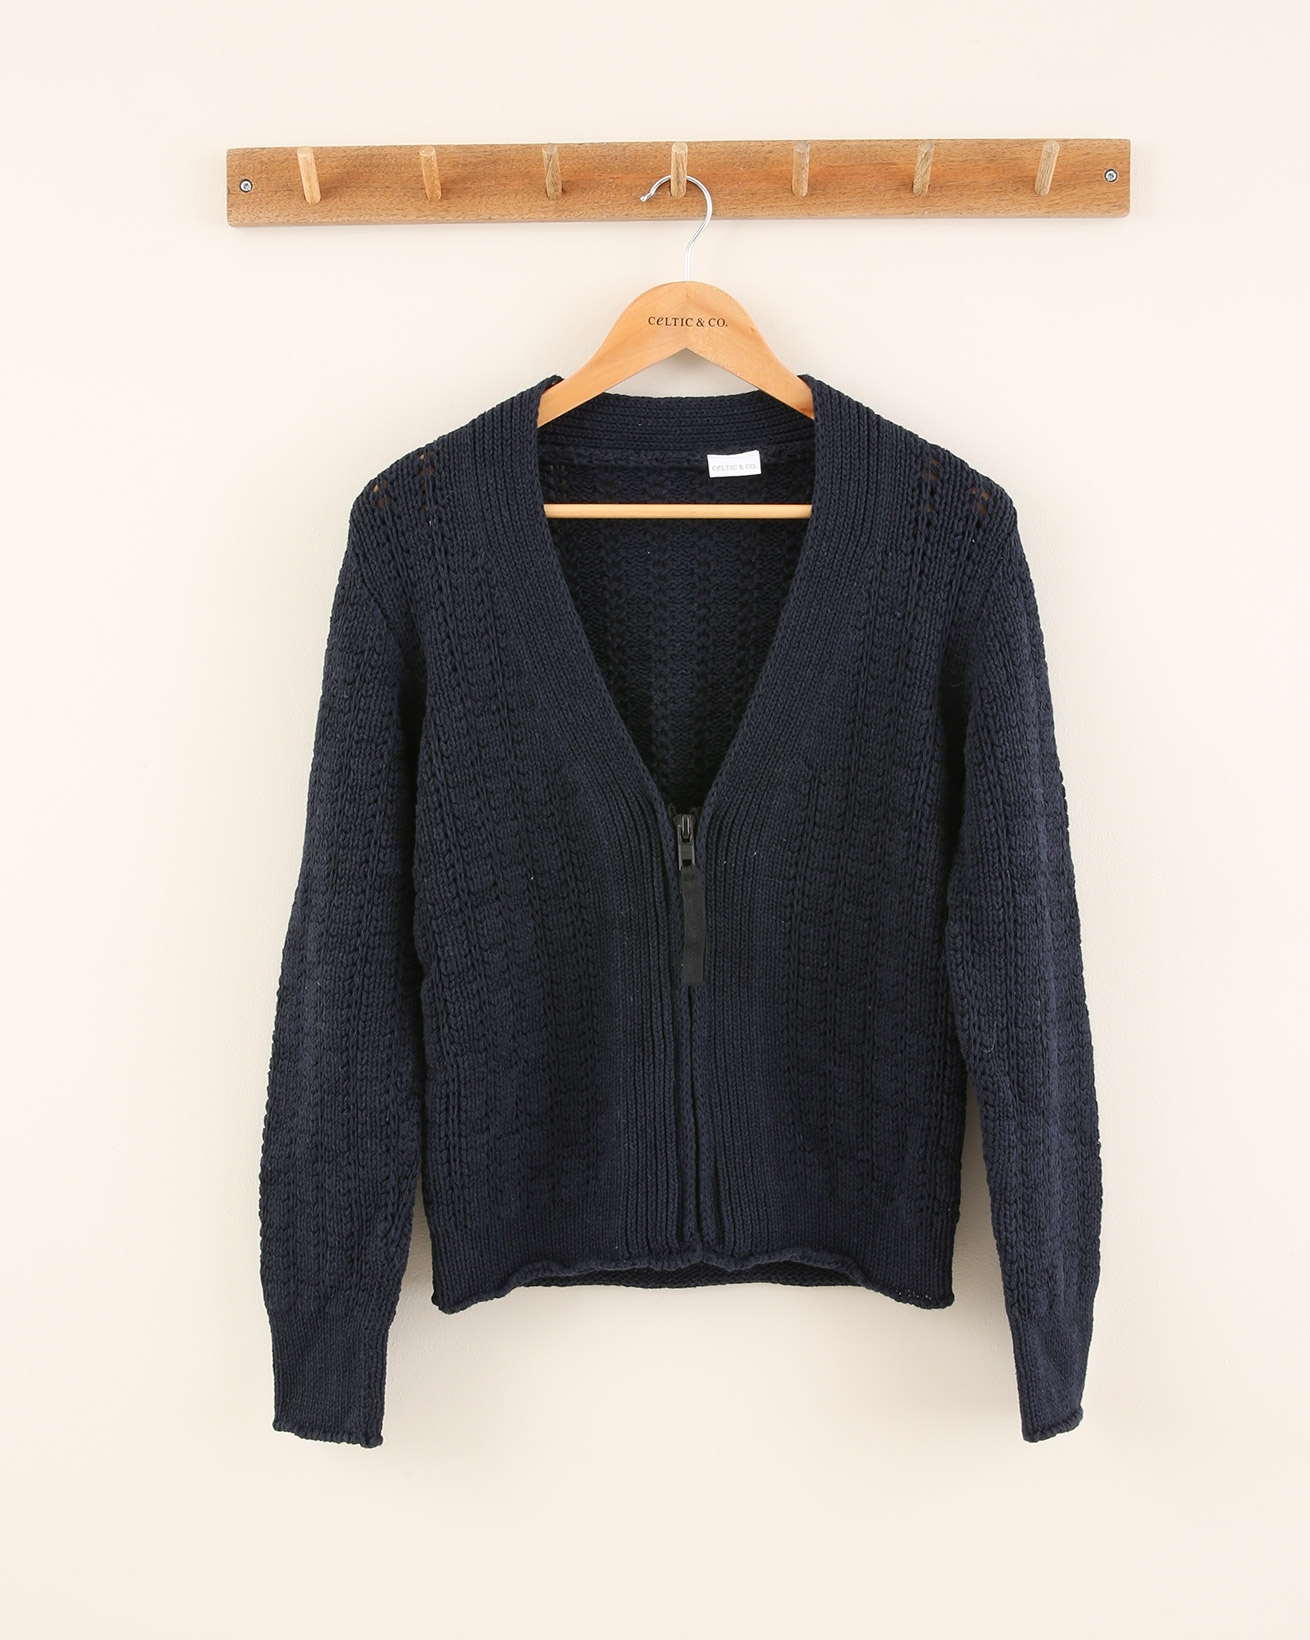 Zip Front Cotton Cable Cardigan - Size Small - Navy - 1879